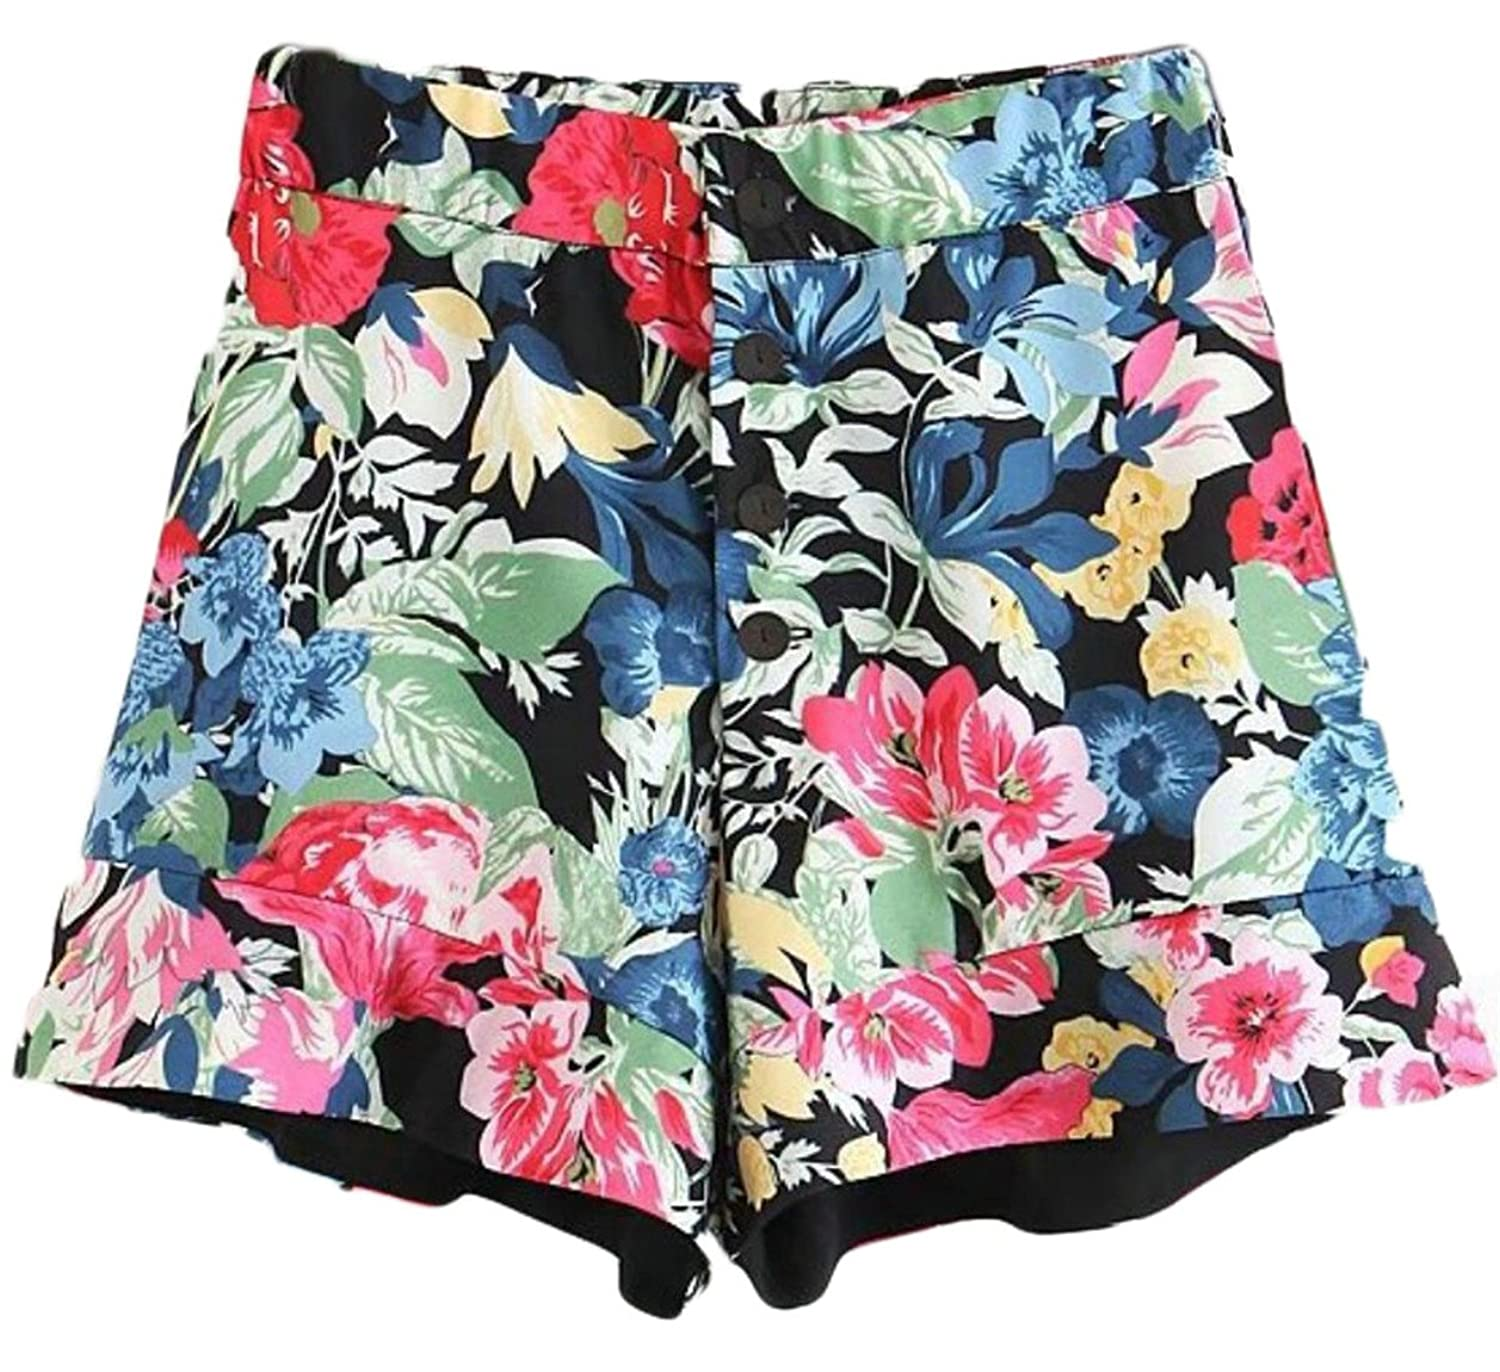 GenericWomen Generic Women's Fashion High wast Floral Print Single-Breasted Sport Pants Hot Pants for sale